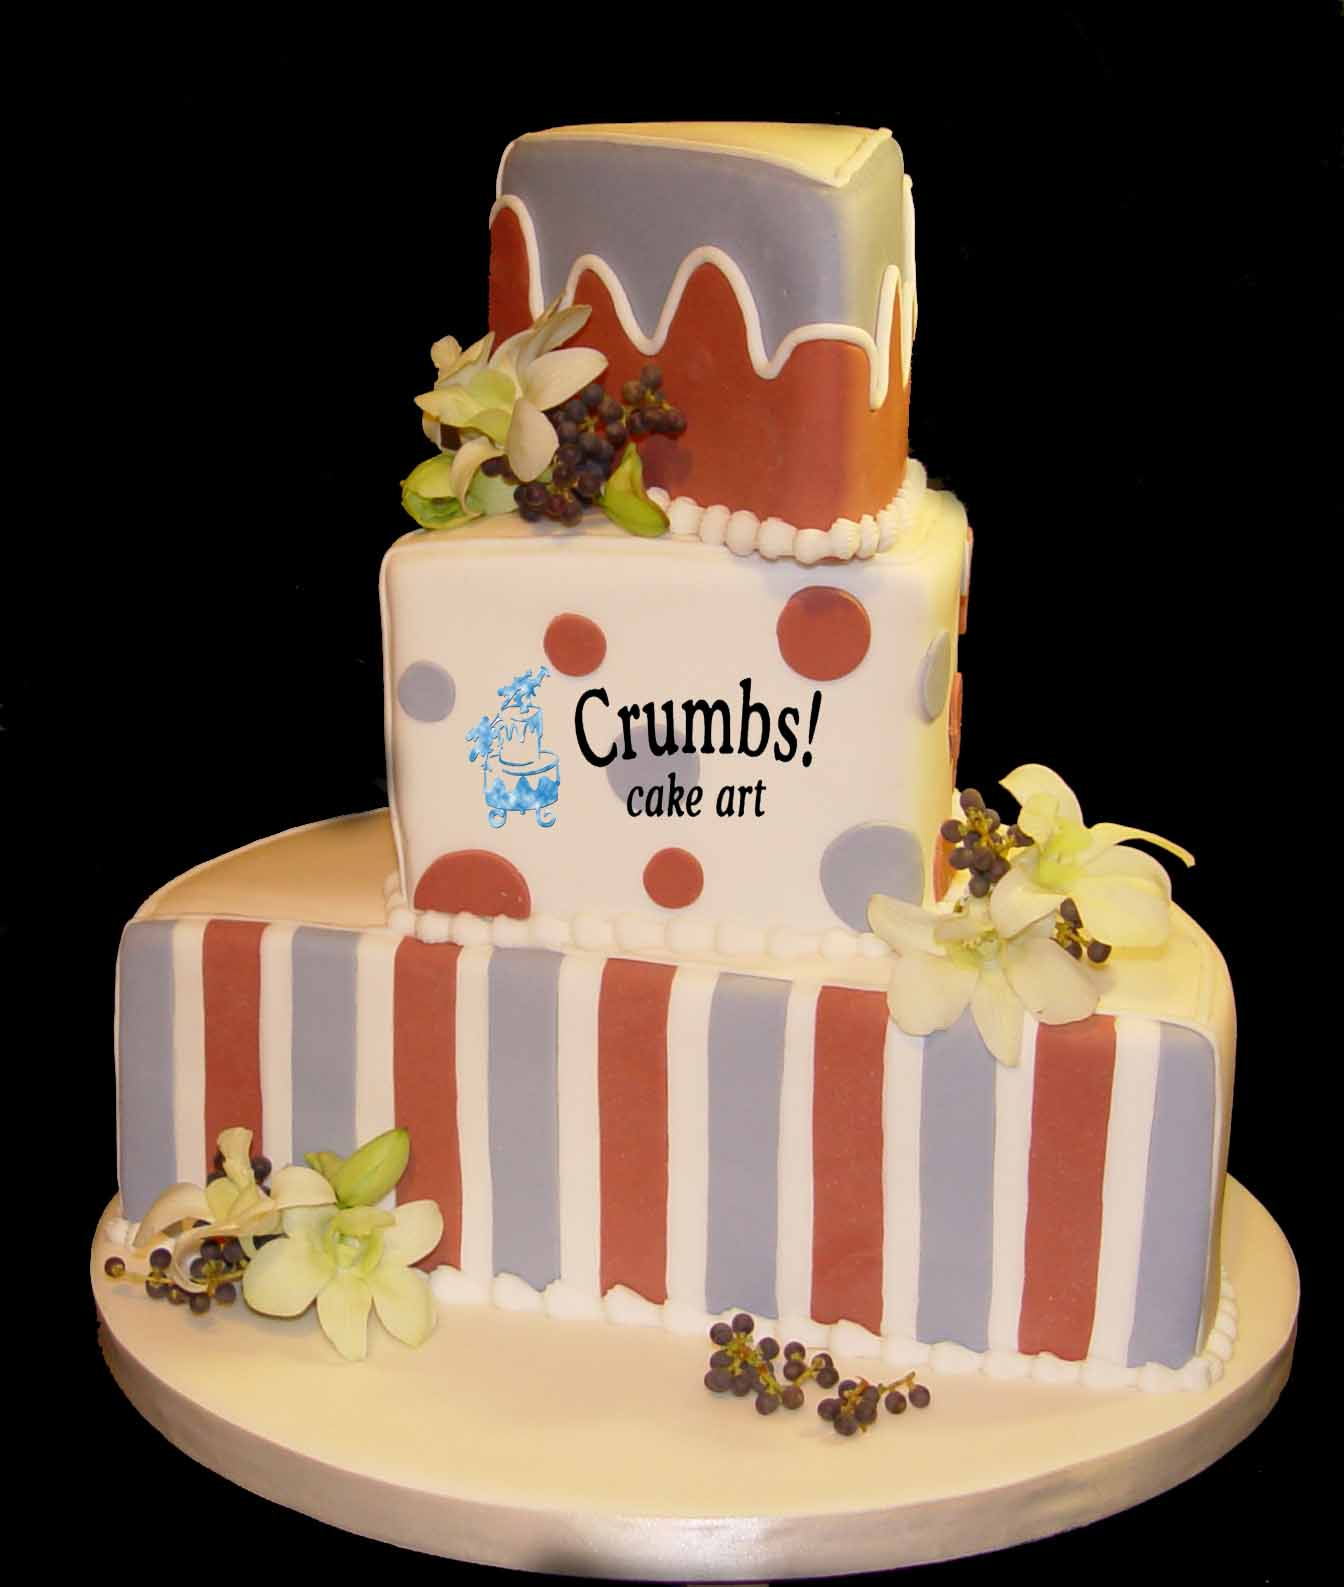 Welcome To Crumbscakeartspot Happy New Year For